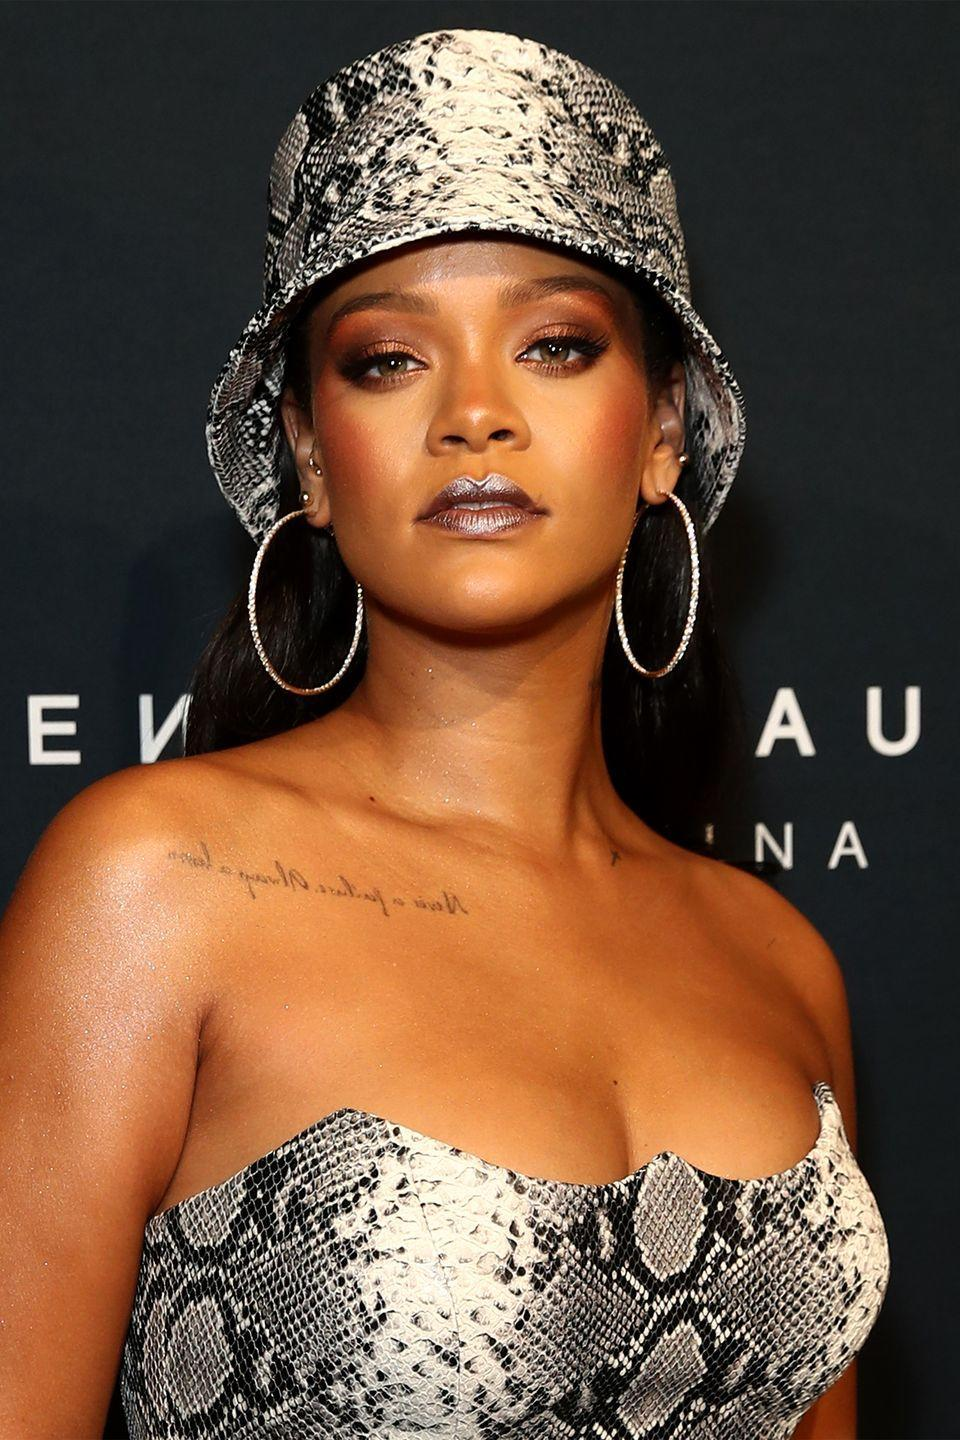 """<p>Rihanna was just 16 when she signed a record deal with Def Jam and <a href=""""https://www.bet.com/celebrities/photos/2015/01/successful-celebs-who-dropped-out-of-high-school.html#!012515-celebs-successful-celebs-who-dropped-out-of-high-school-rihanna"""" rel=""""nofollow noopener"""" target=""""_blank"""" data-ylk=""""slk:left school"""" class=""""link rapid-noclick-resp"""">left school</a>. Since then, she has dropped countless hits and built a fashion and beauty empire with her Fenty lines. She is also reportedly launching a <a href=""""https://www.harpersbazaar.com/celebrity/latest/a25931217/rihanna-and-lvmh-to-start-luxury-fashion-brand/"""" rel=""""nofollow noopener"""" target=""""_blank"""" data-ylk=""""slk:luxury fashion house"""" class=""""link rapid-noclick-resp"""">luxury fashion house</a>. </p>"""